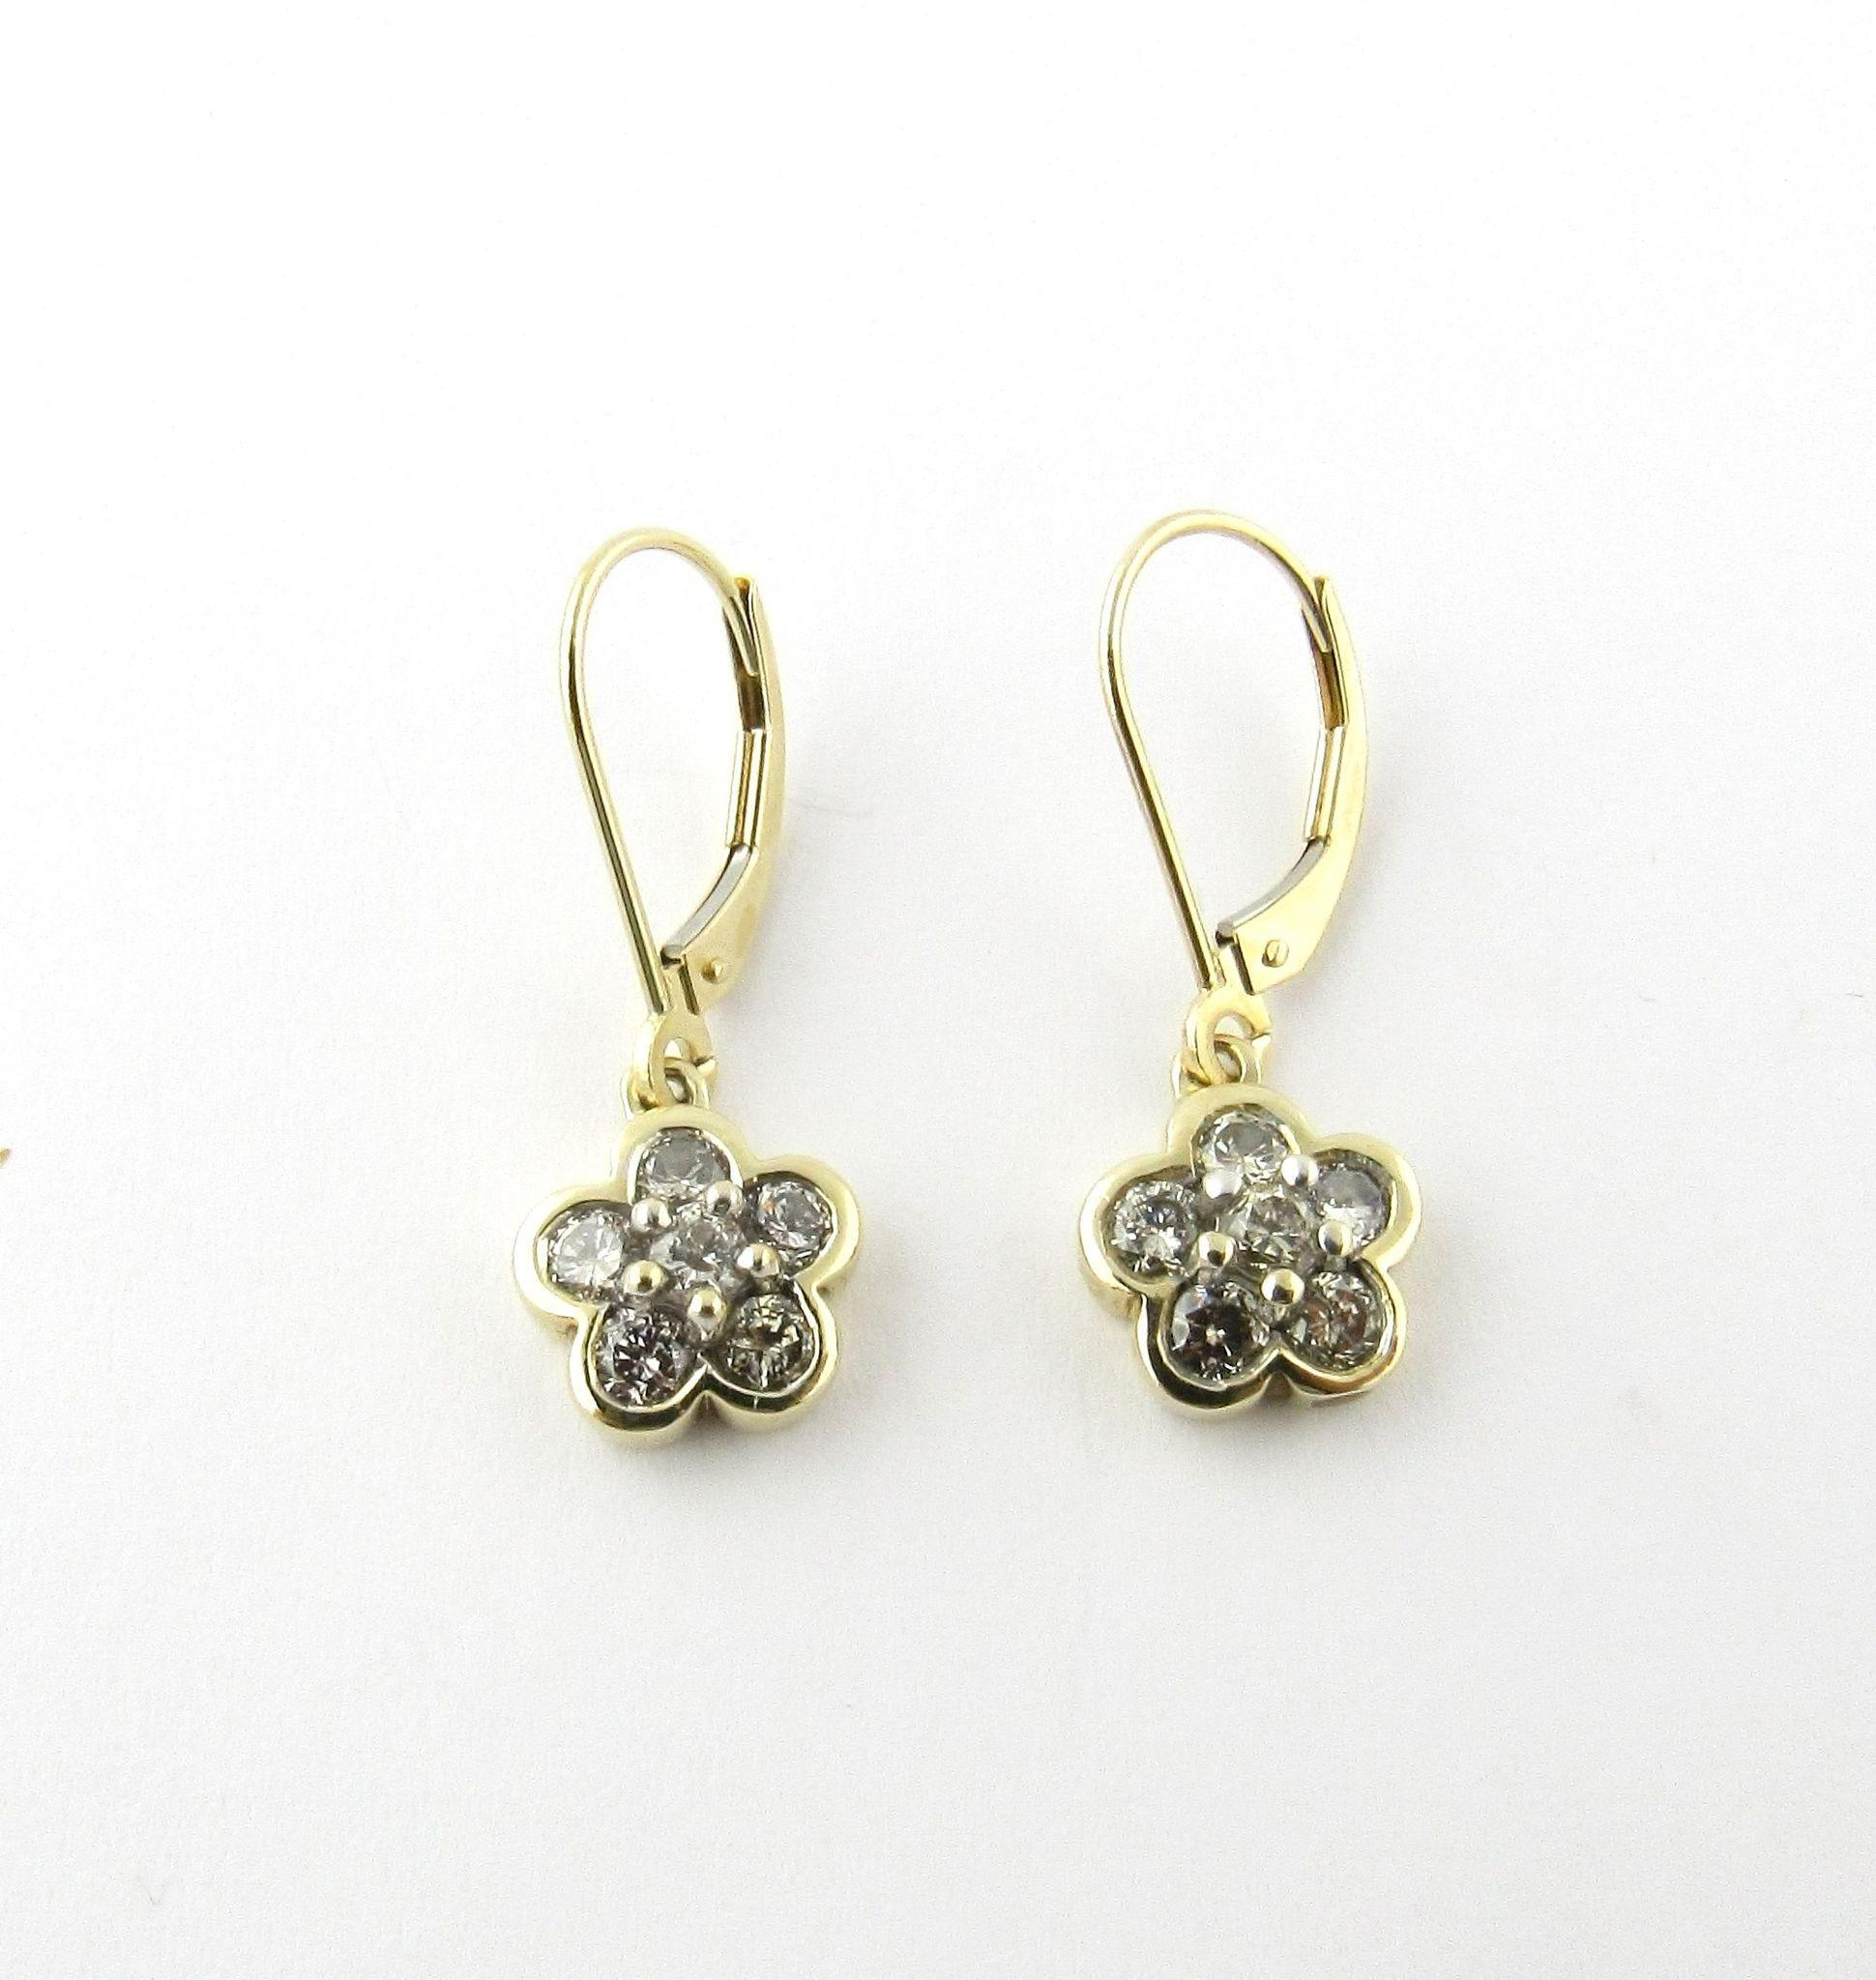 Vintage 14K Yellow Gold and Diamond Floral Dangle Earrings from ctgoldcustome